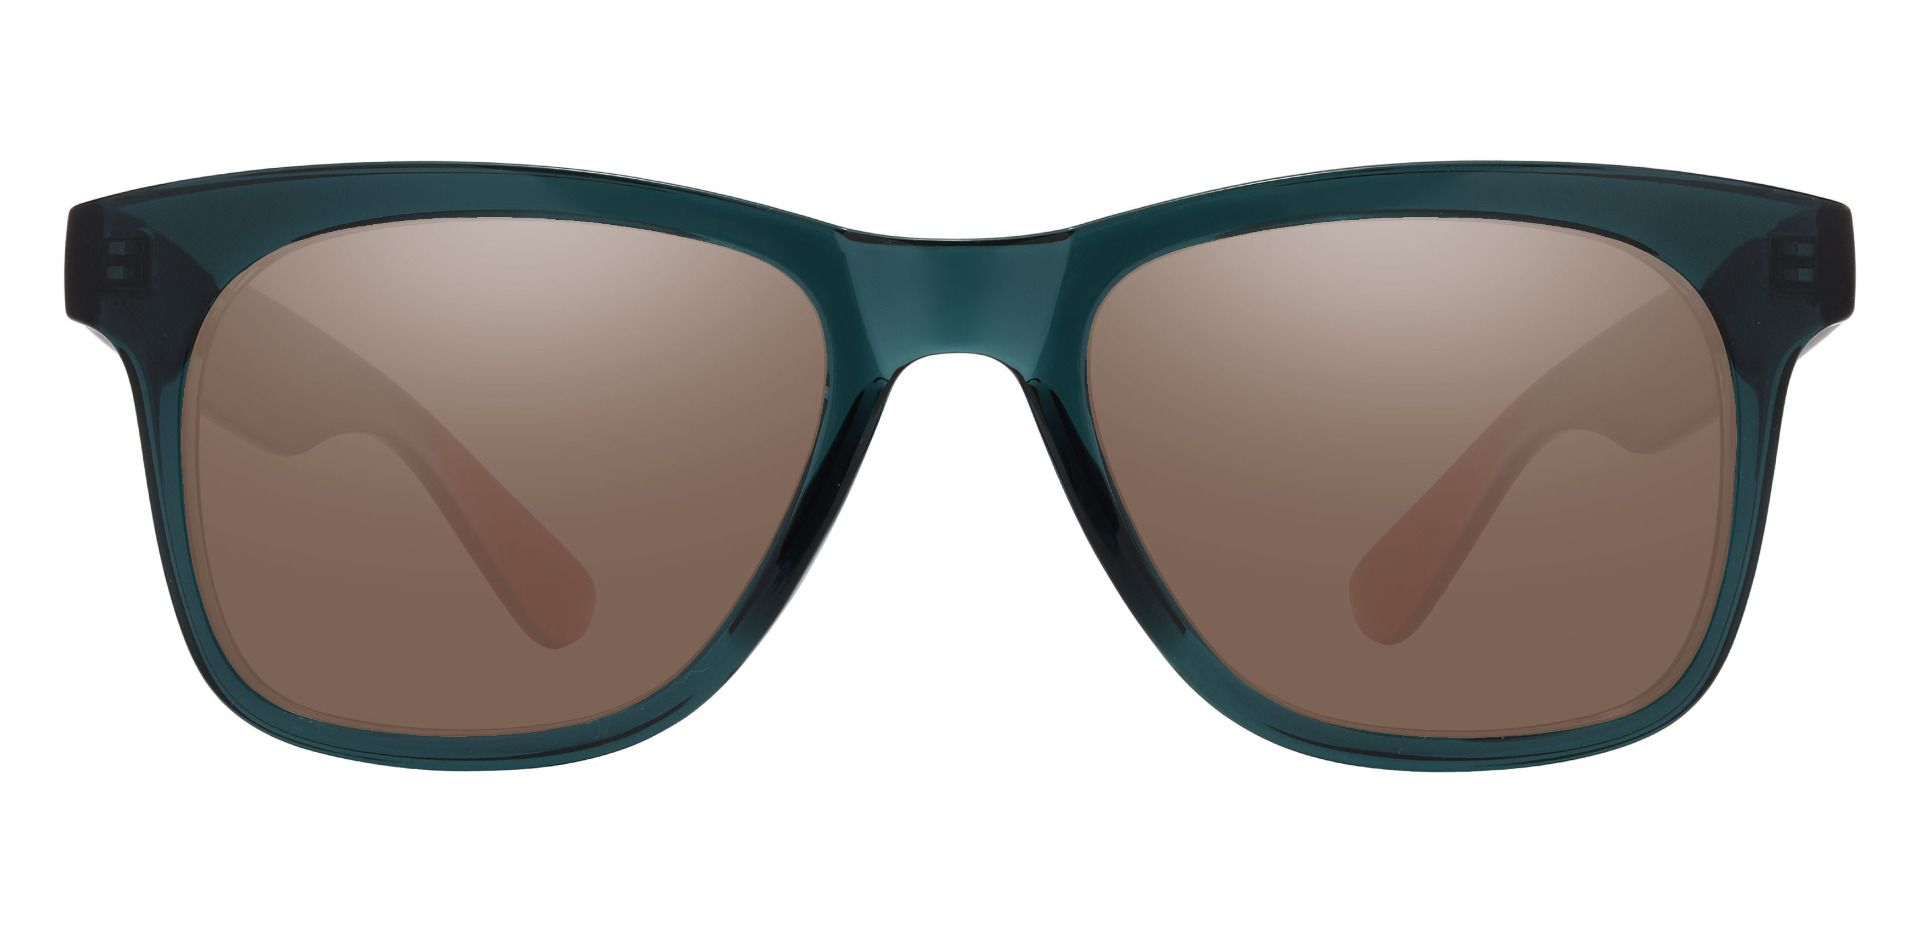 Hurley Square Prescription Sunglasses - Green Frame With Brown Lenses